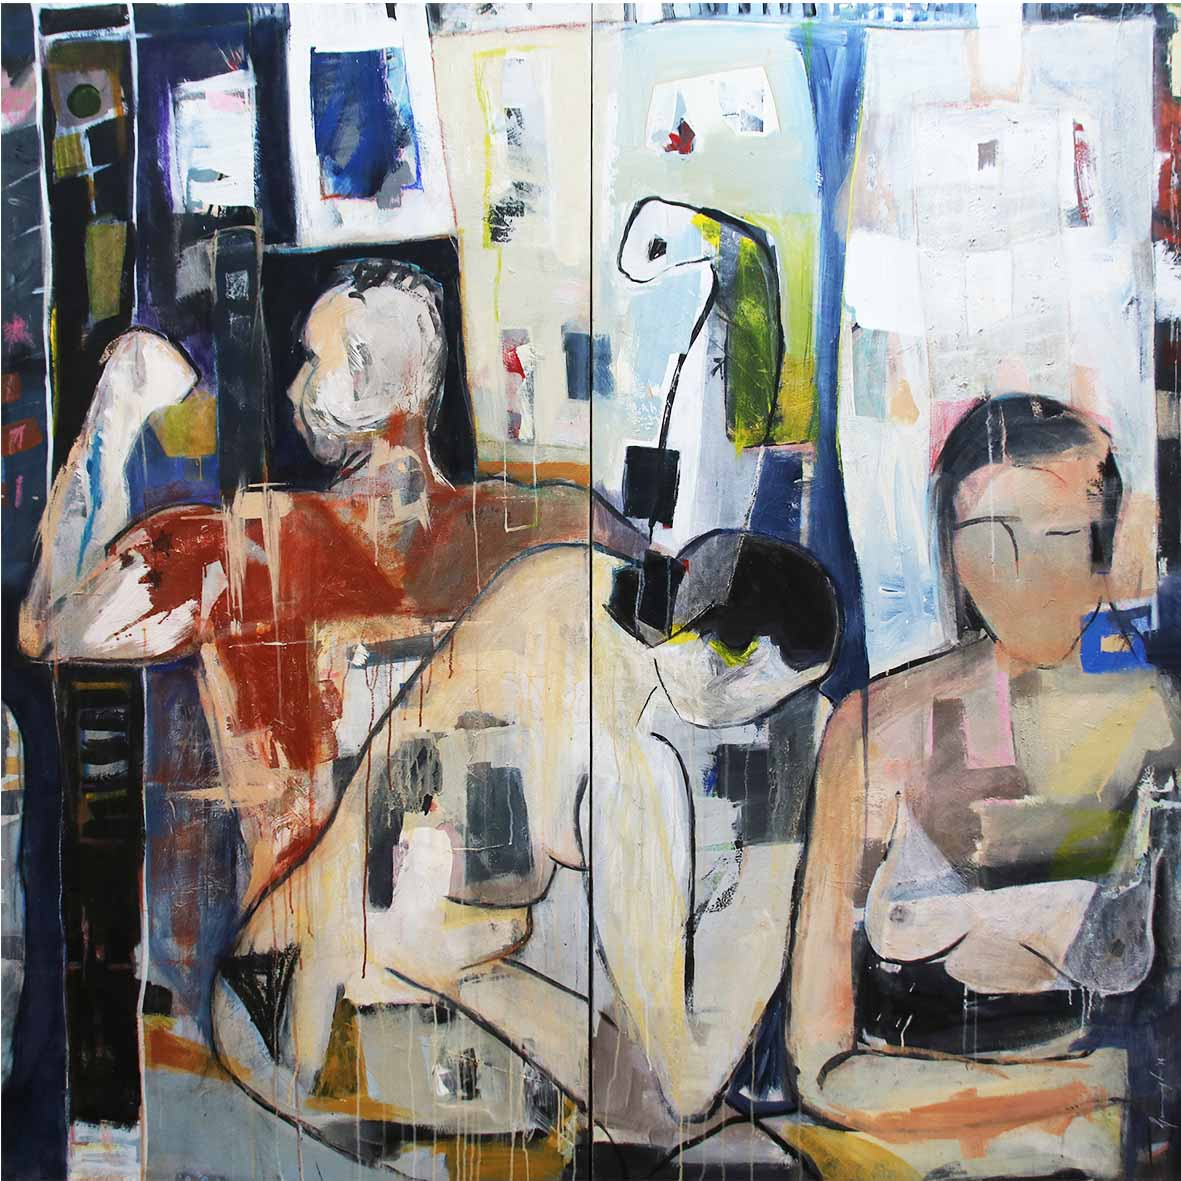 Geogia Lane Balancing Act (Diptych) 2014 Acrylic and Mixed media on Canvas 200 x 200 cm